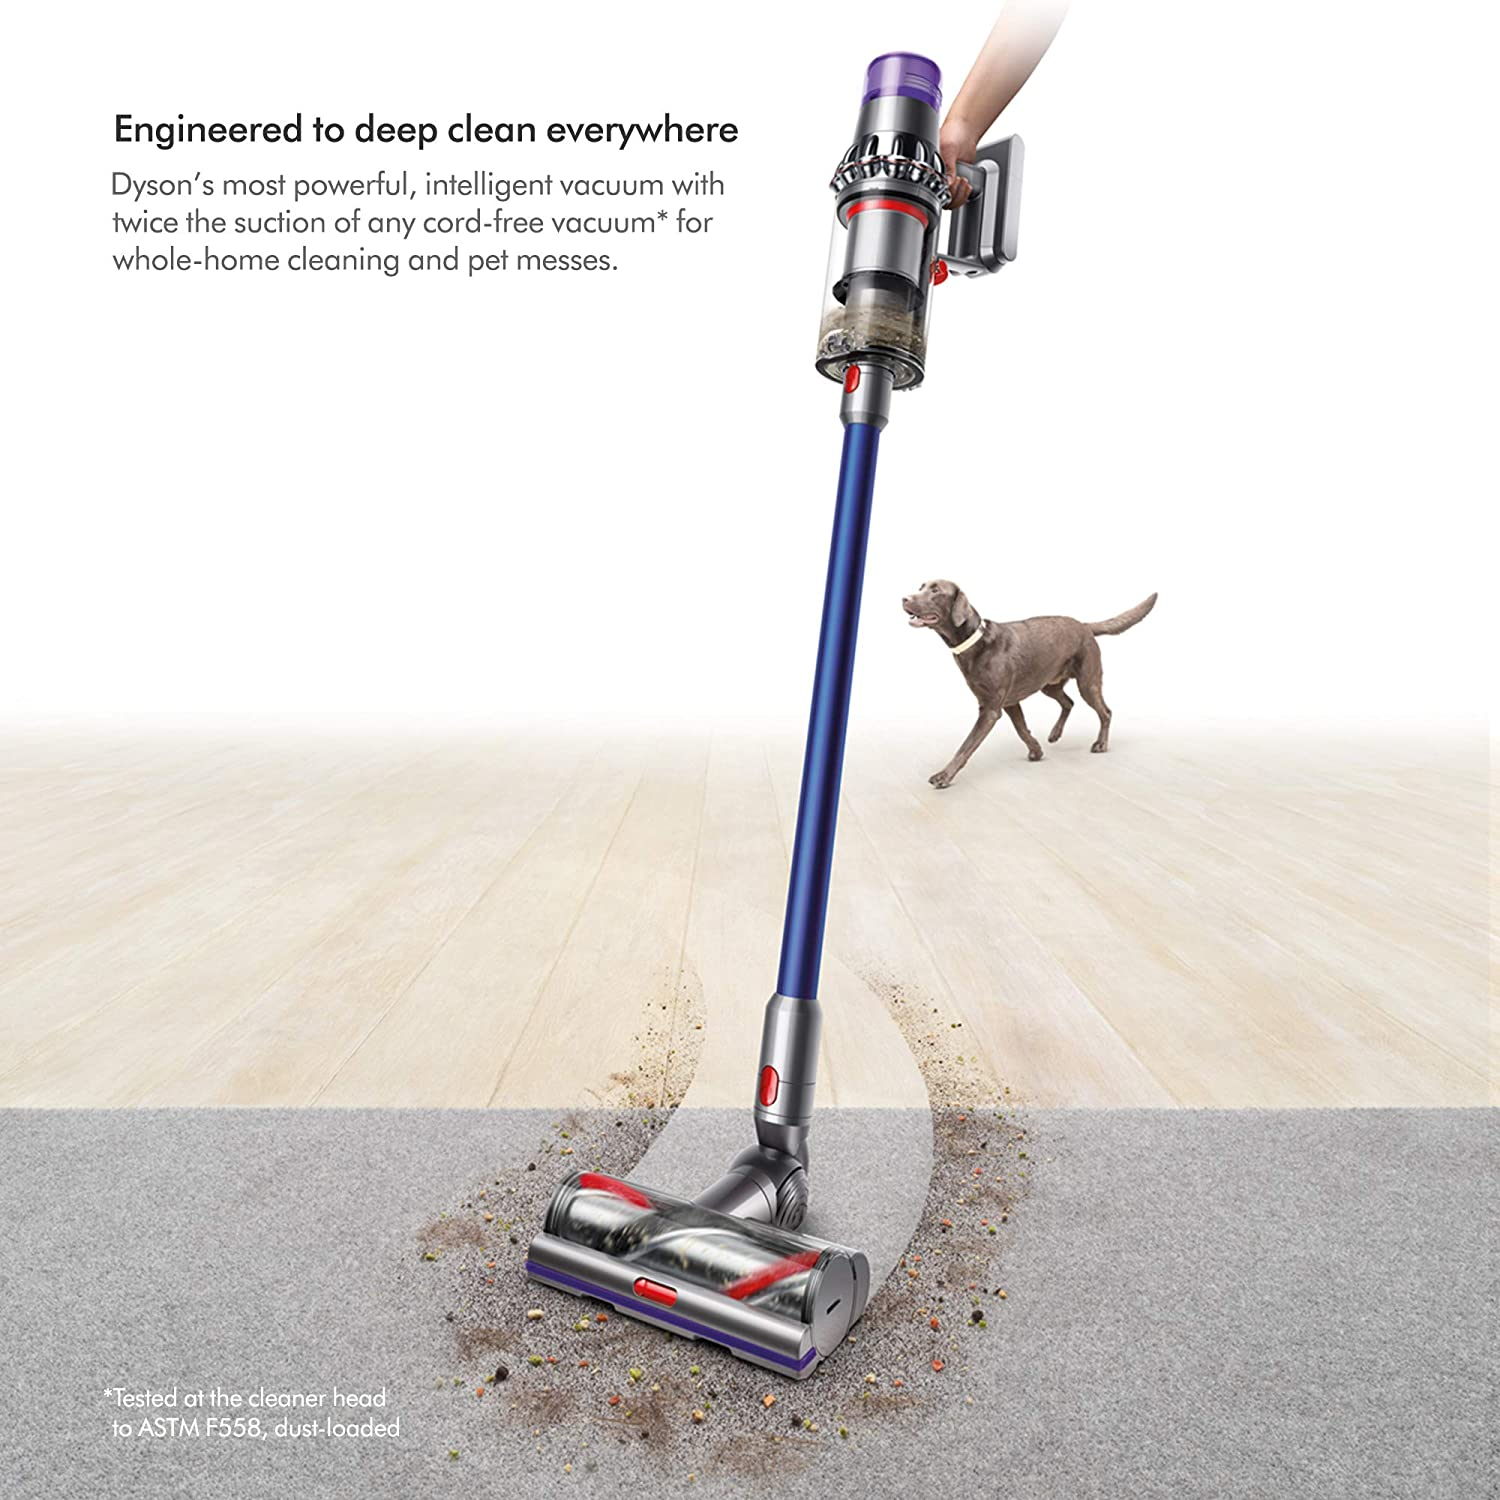 The 7 Best Stick Vacuums Reviewed 7